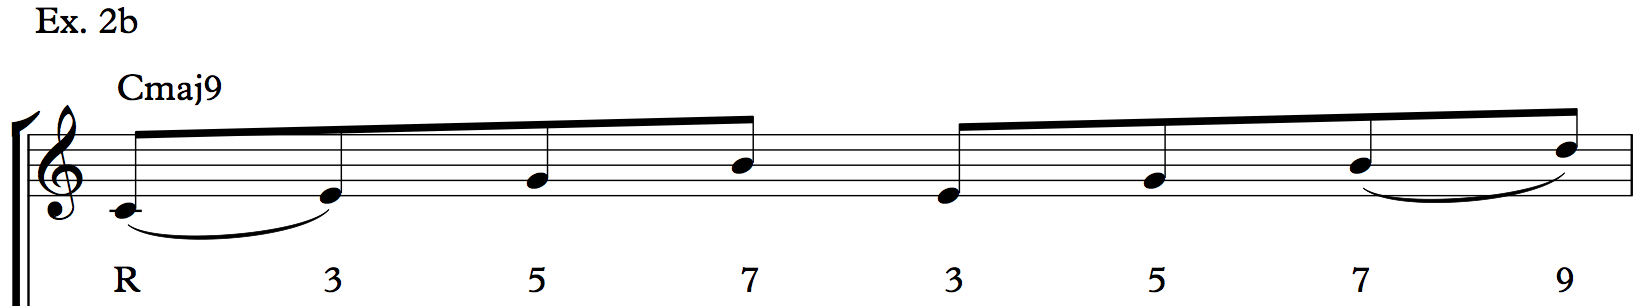 Nick Johnston Guitar - Arpeggio Sequence Lick - Ex. 2b